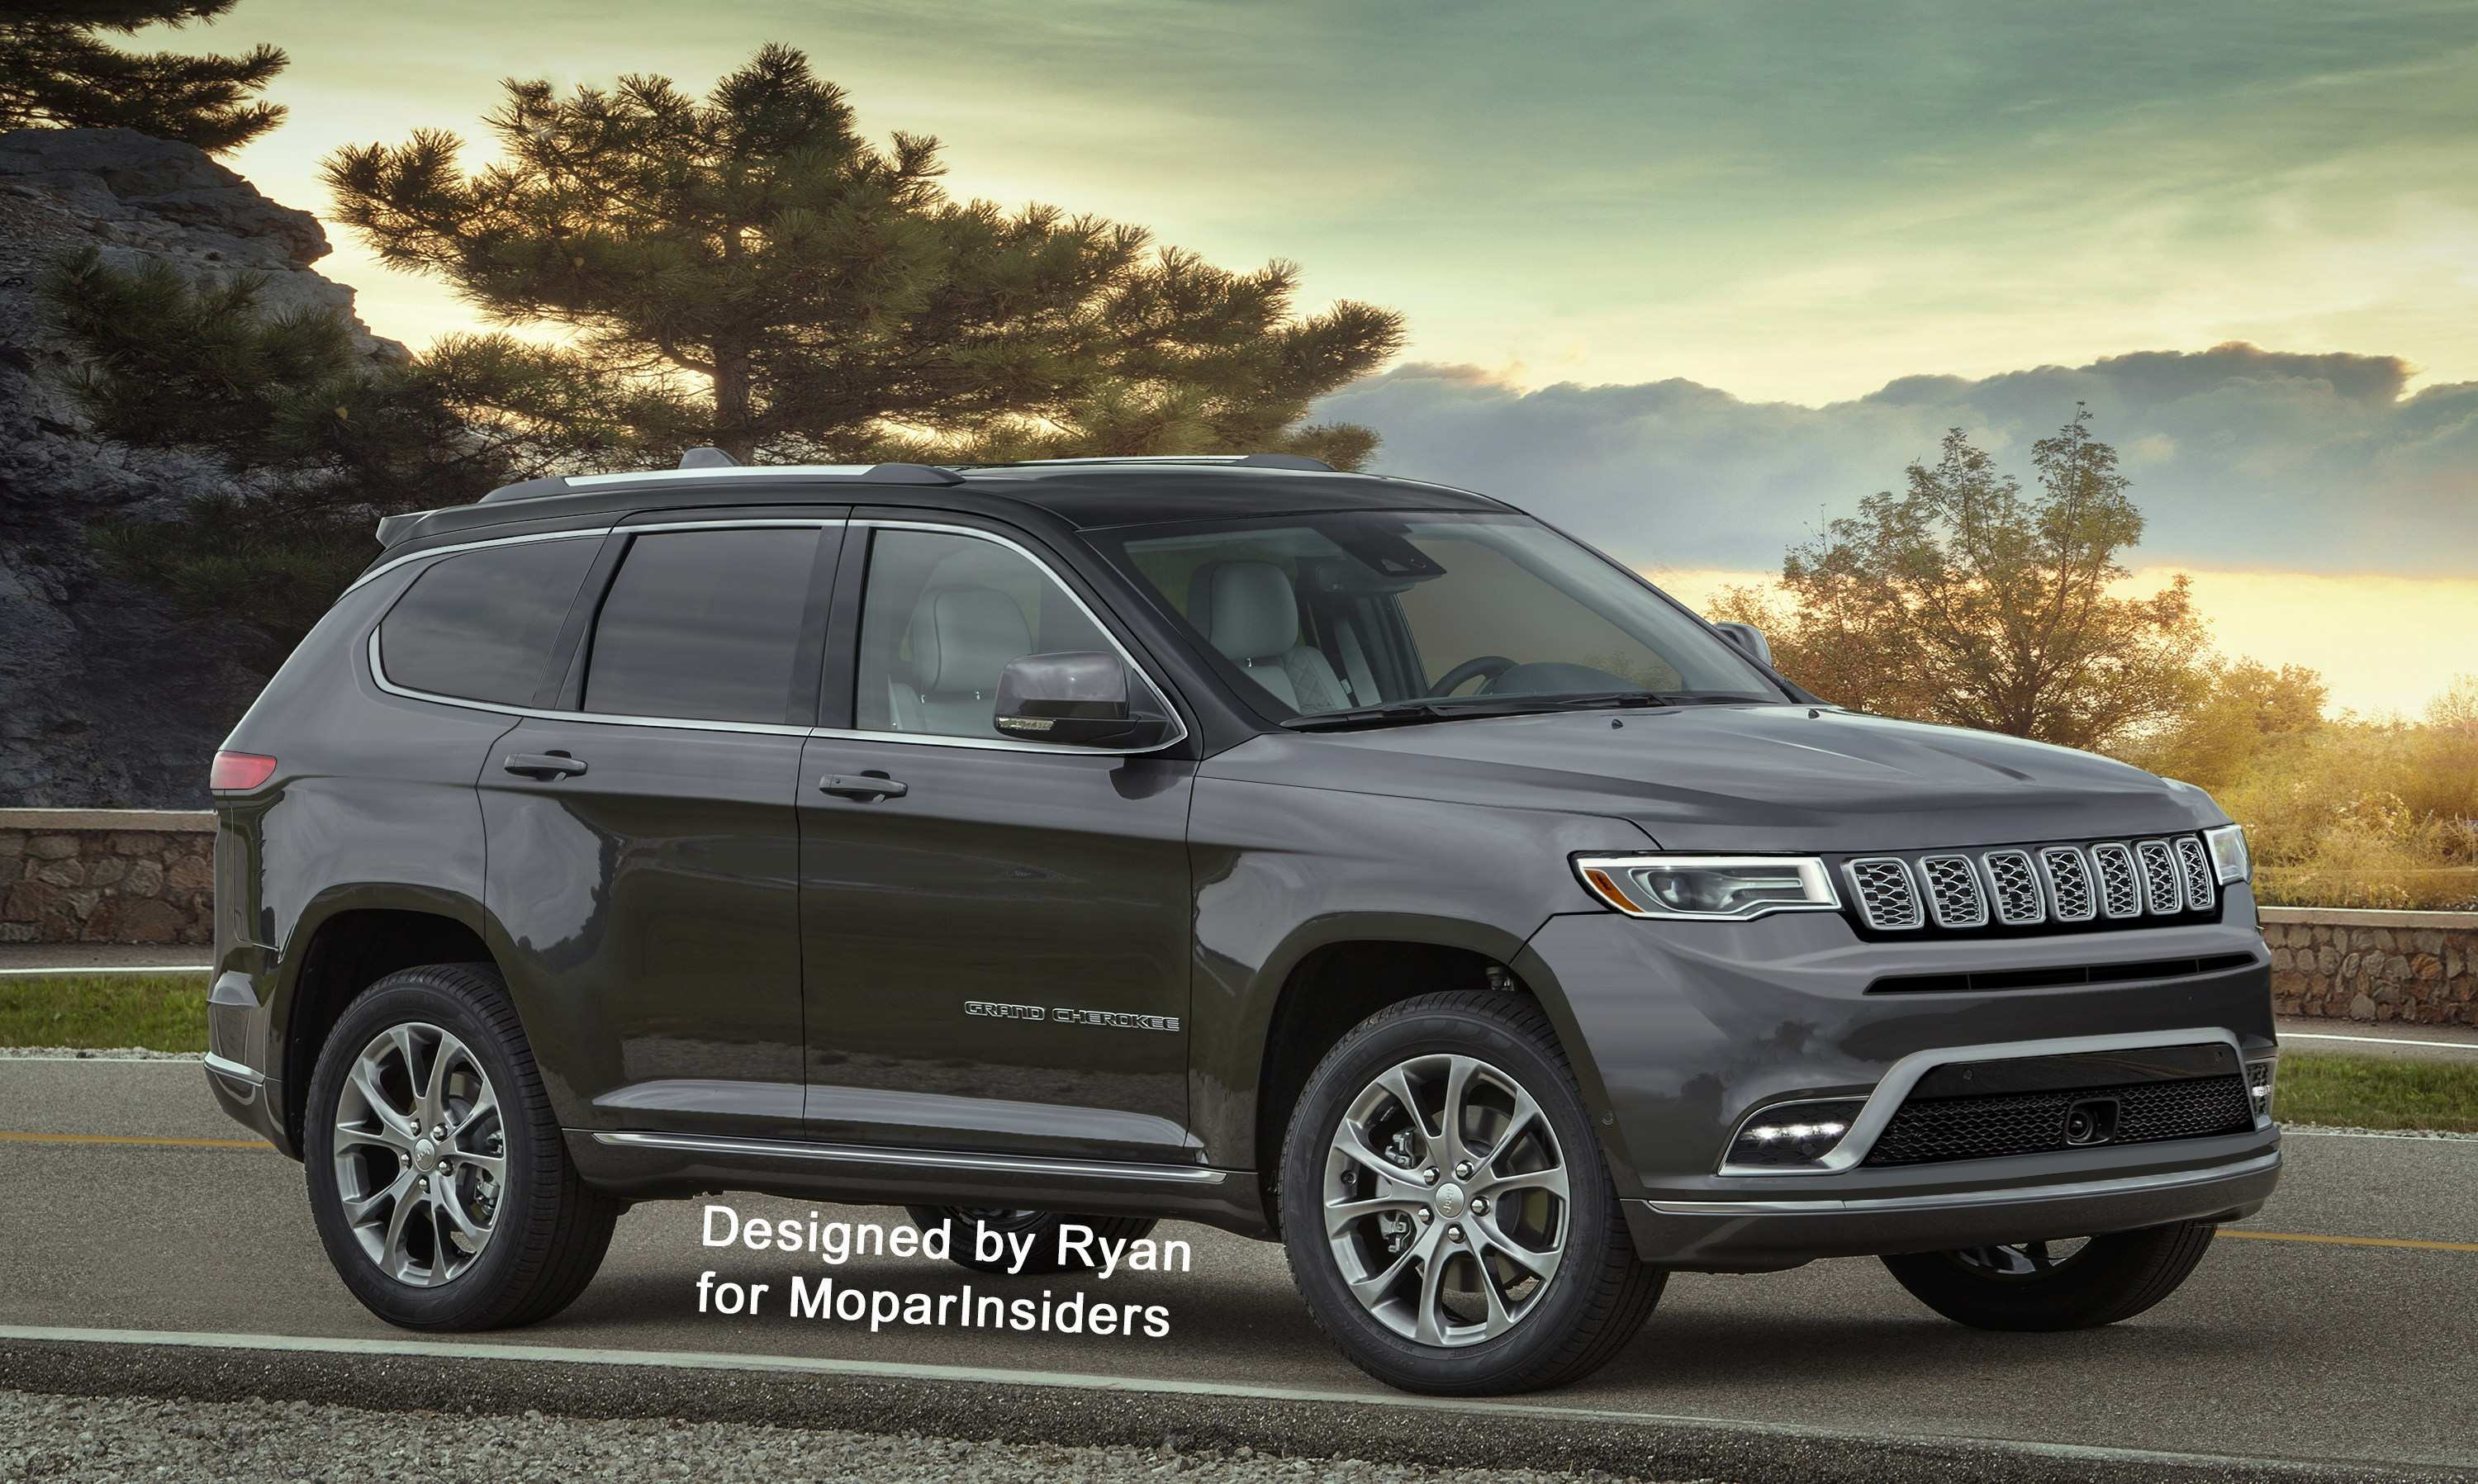 59 Great Jeep Grand Cherokee 2020 Redesign Price by Jeep Grand Cherokee 2020 Redesign